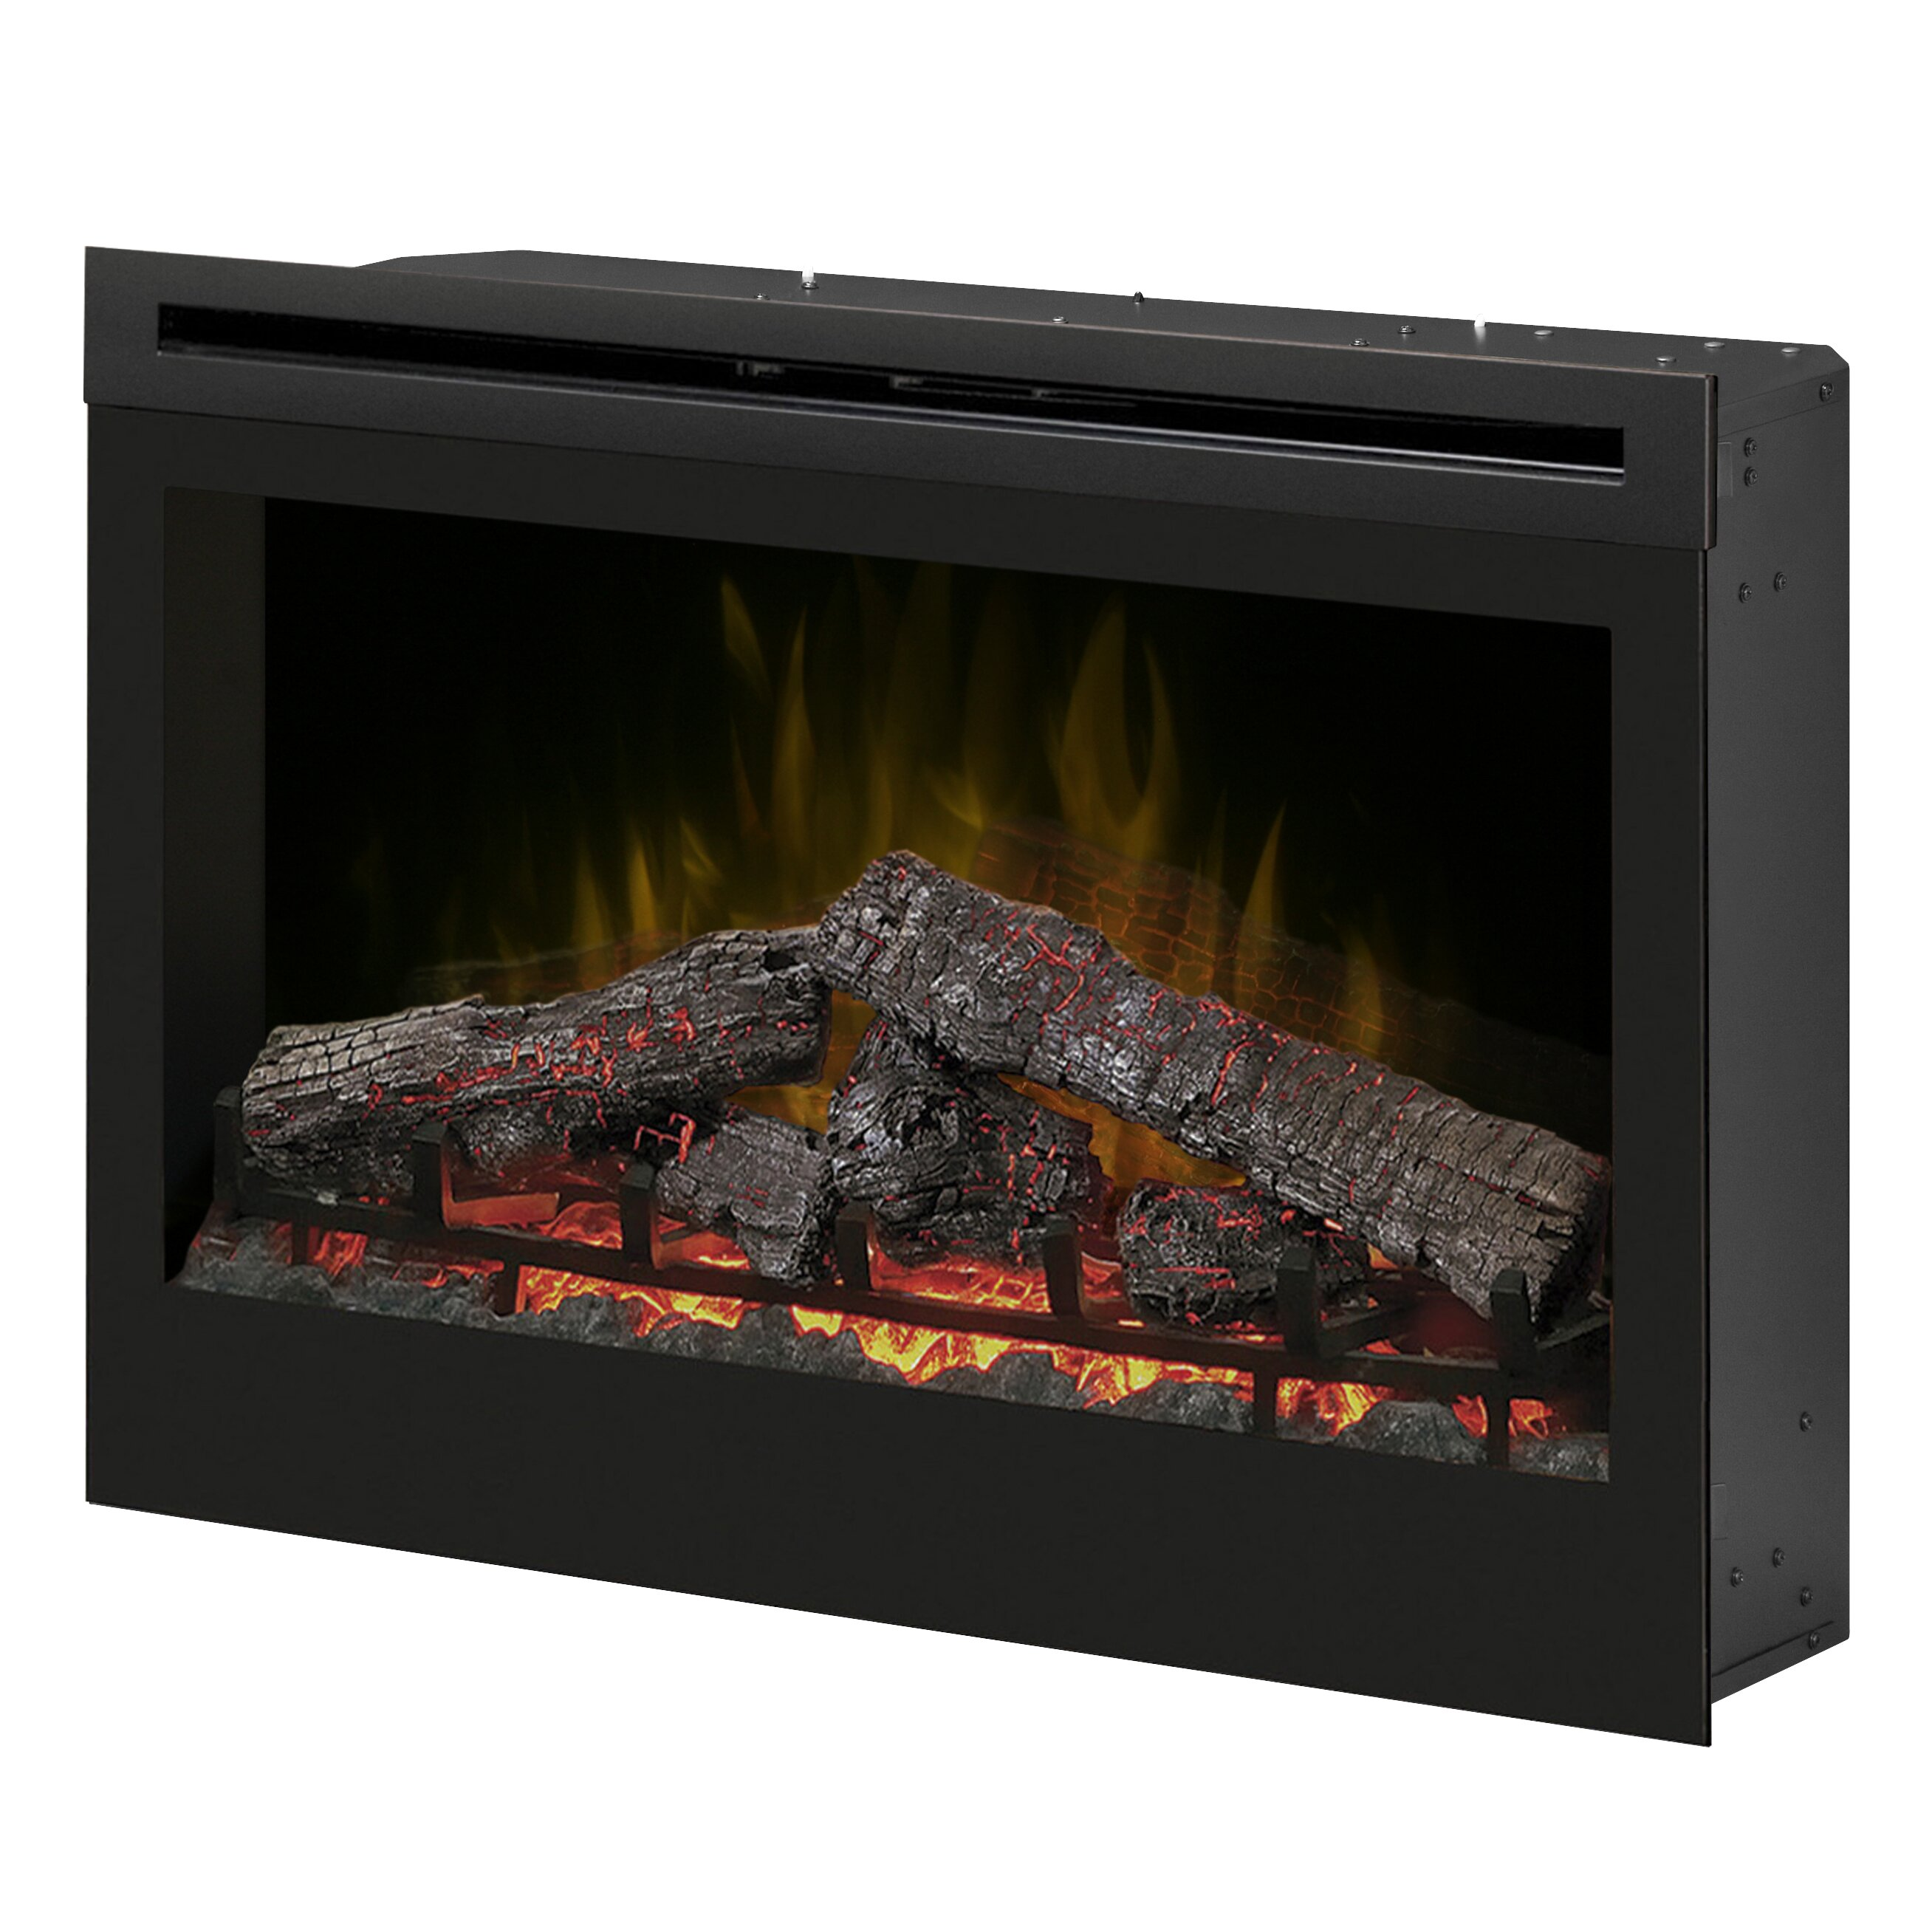 Dimplex Electraflame Self Trimming Wall Mount Electric Fireplace Reviews Wayfair